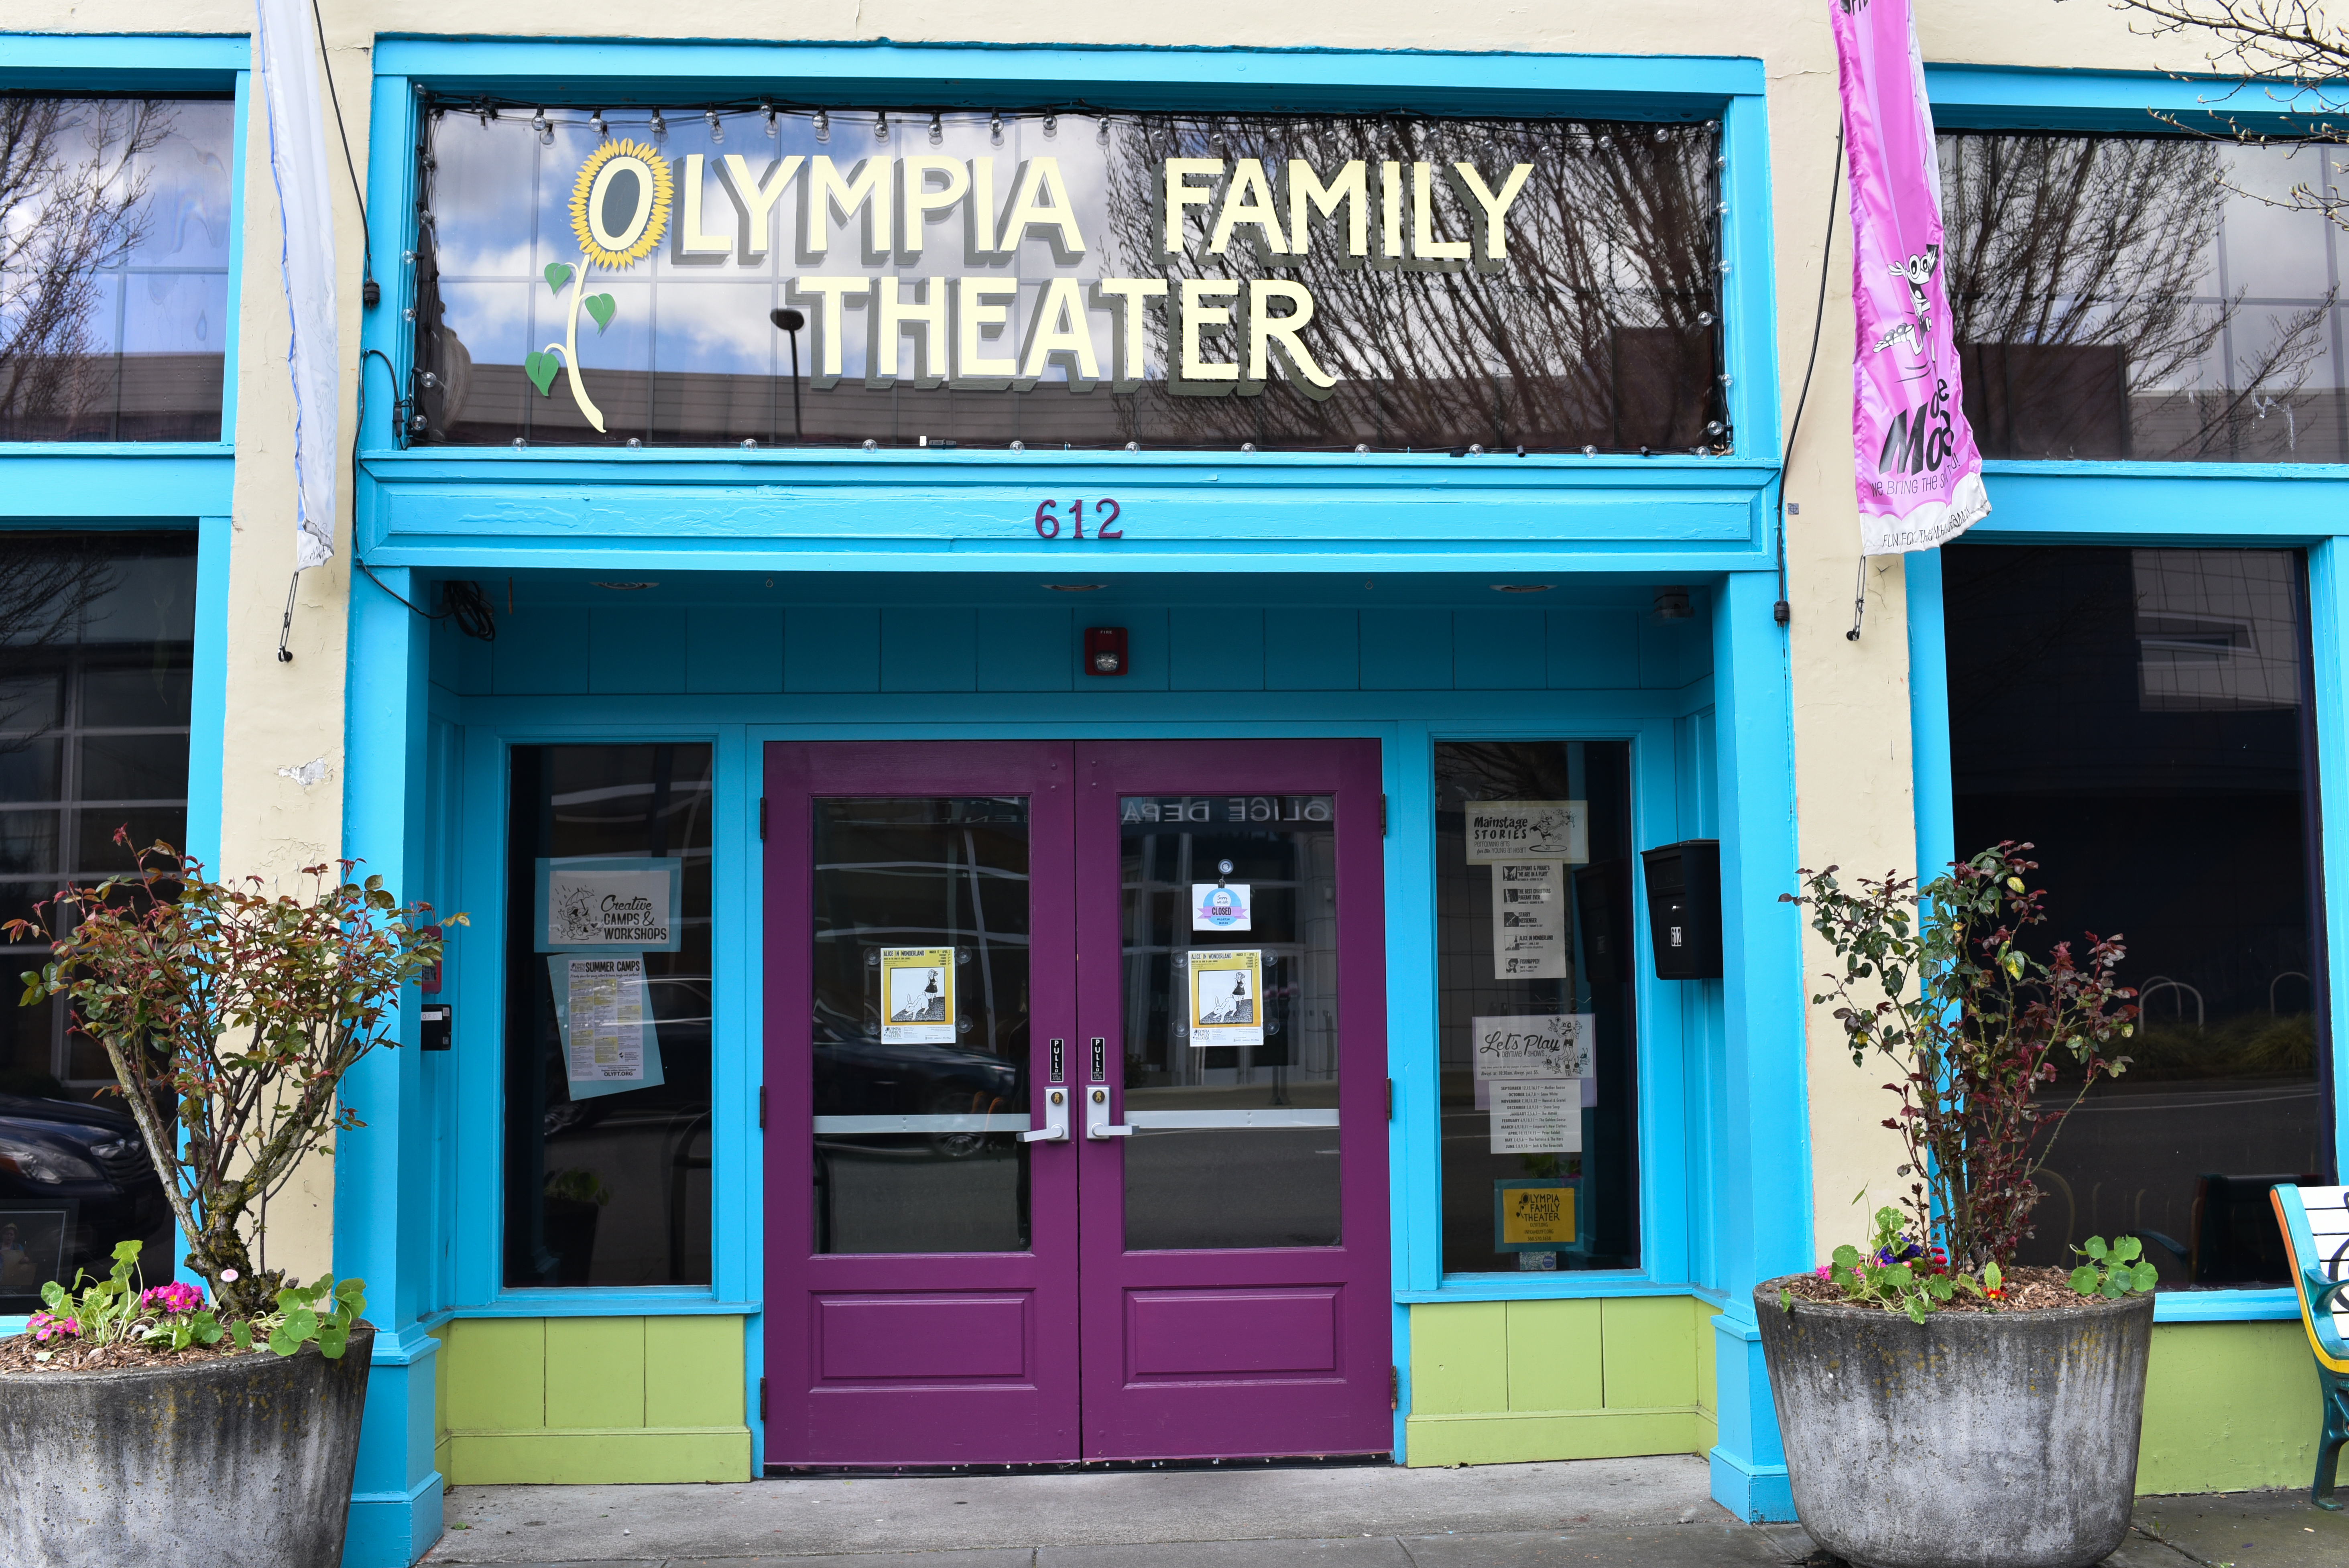 The Olympia Family Theater offers fun performances and programs for all ages. Stop by for a puppet show or workshop. (Image: Rebecca Mongrain/Seattle Refined)